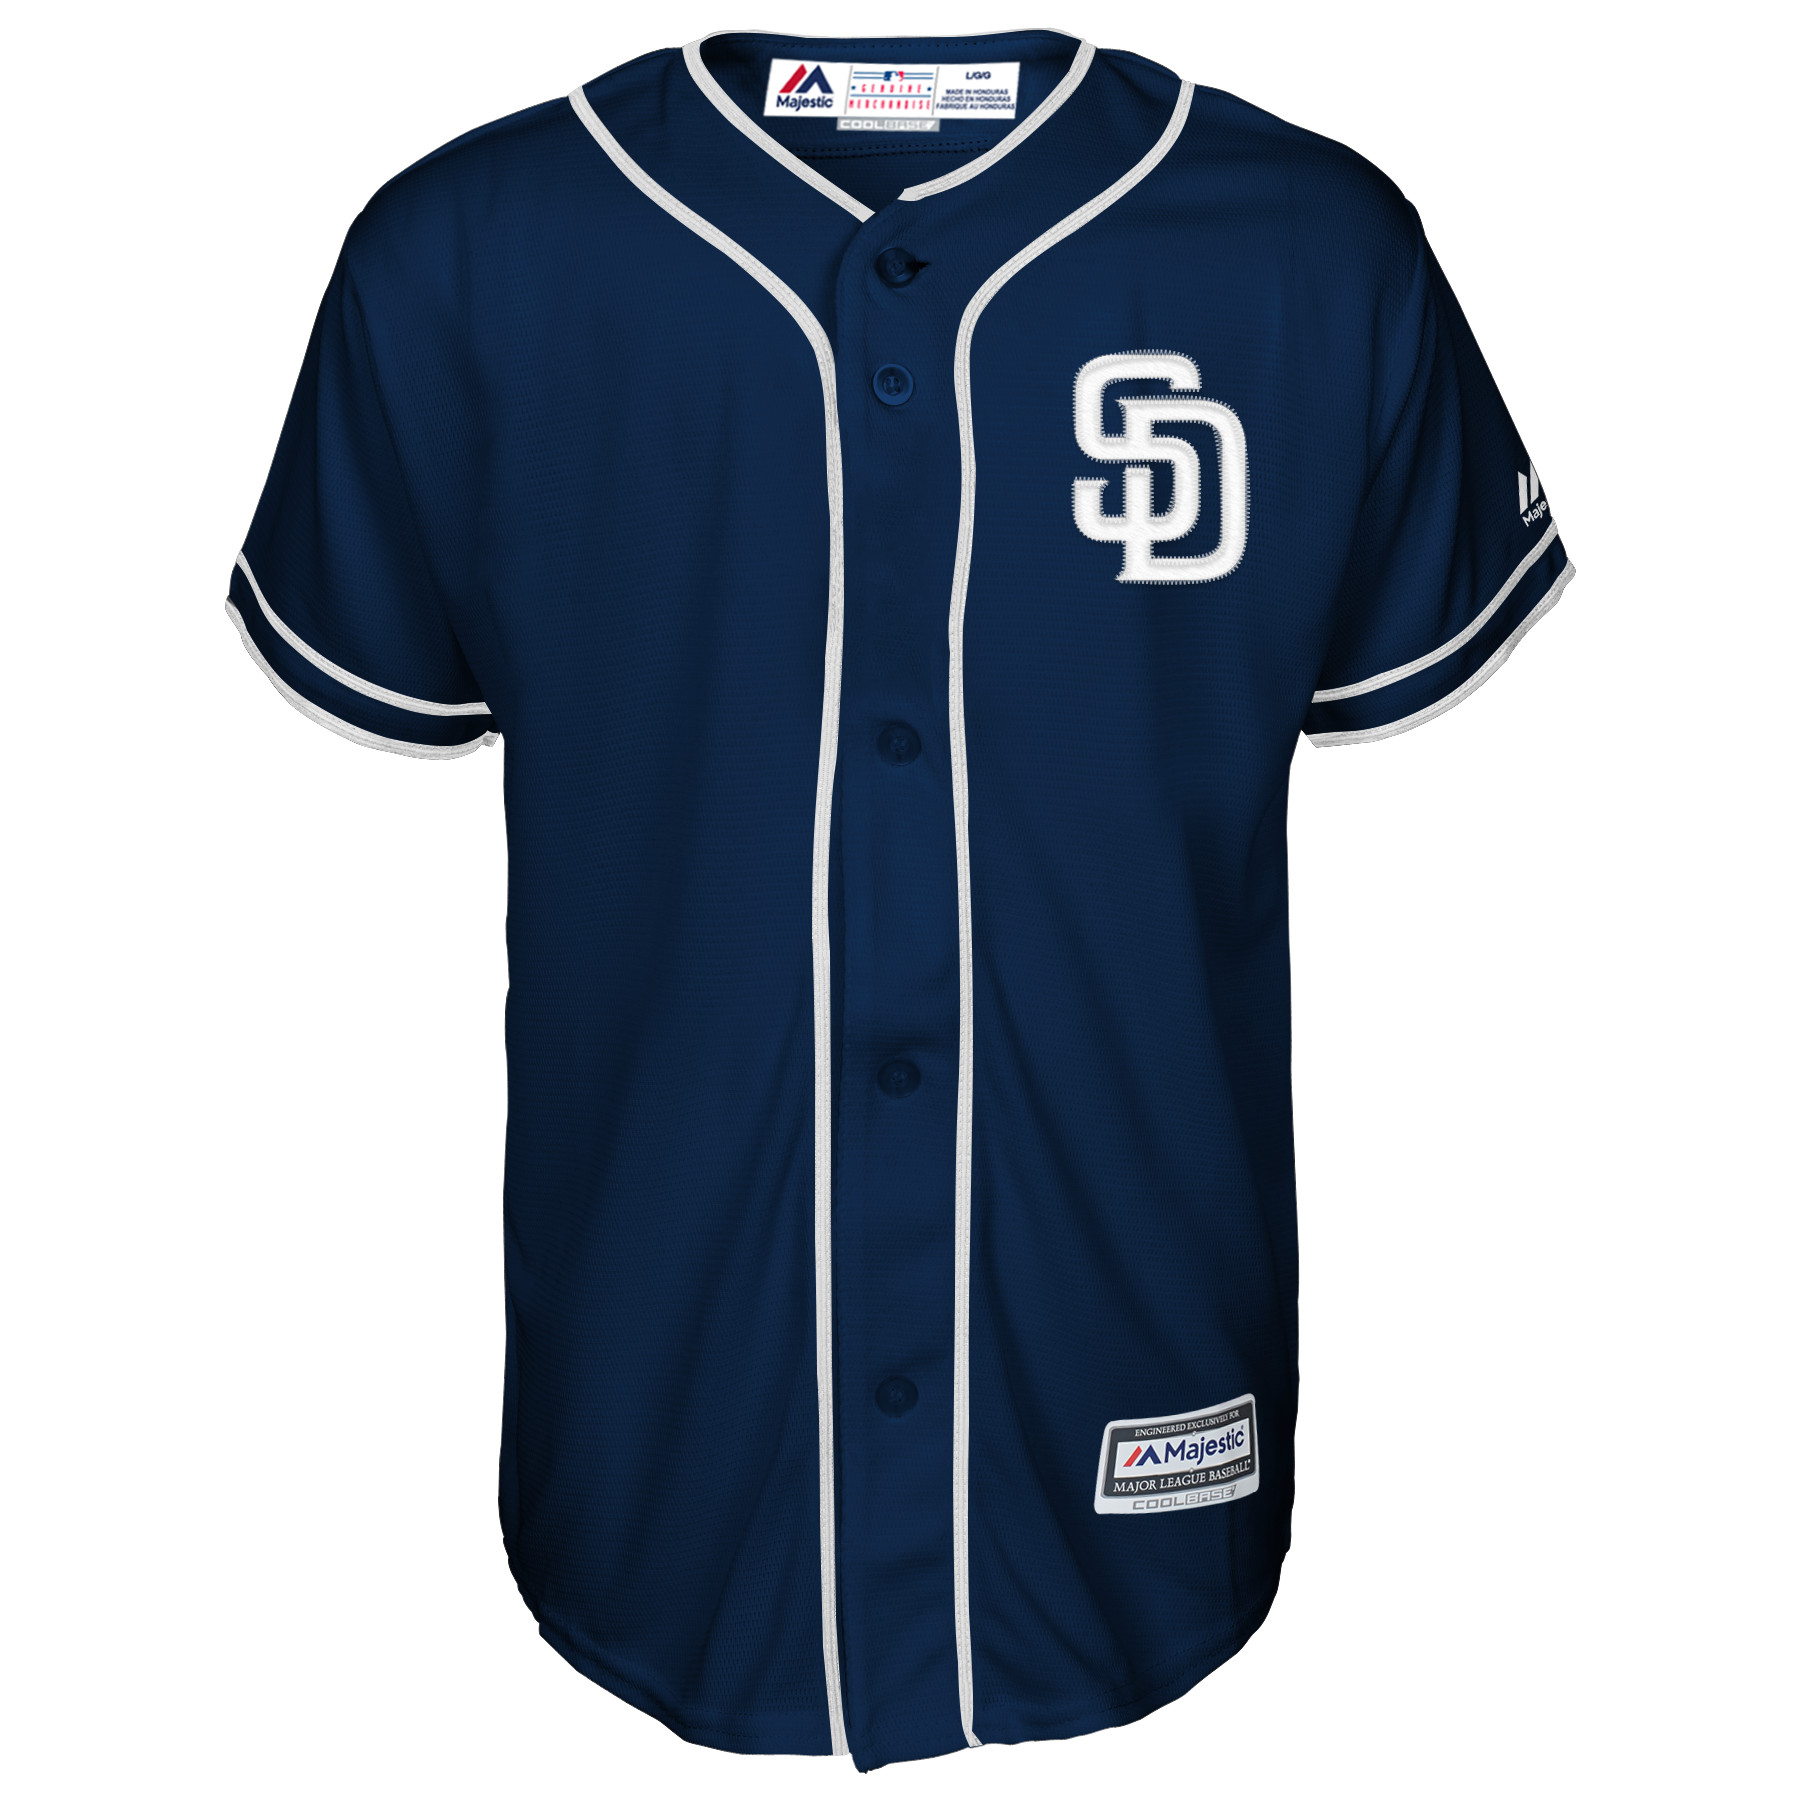 check out 8307d 845d8 Eric Hosmer San Diego Padres Majestic Youth Official Cool Base Player  Jersey - Navy